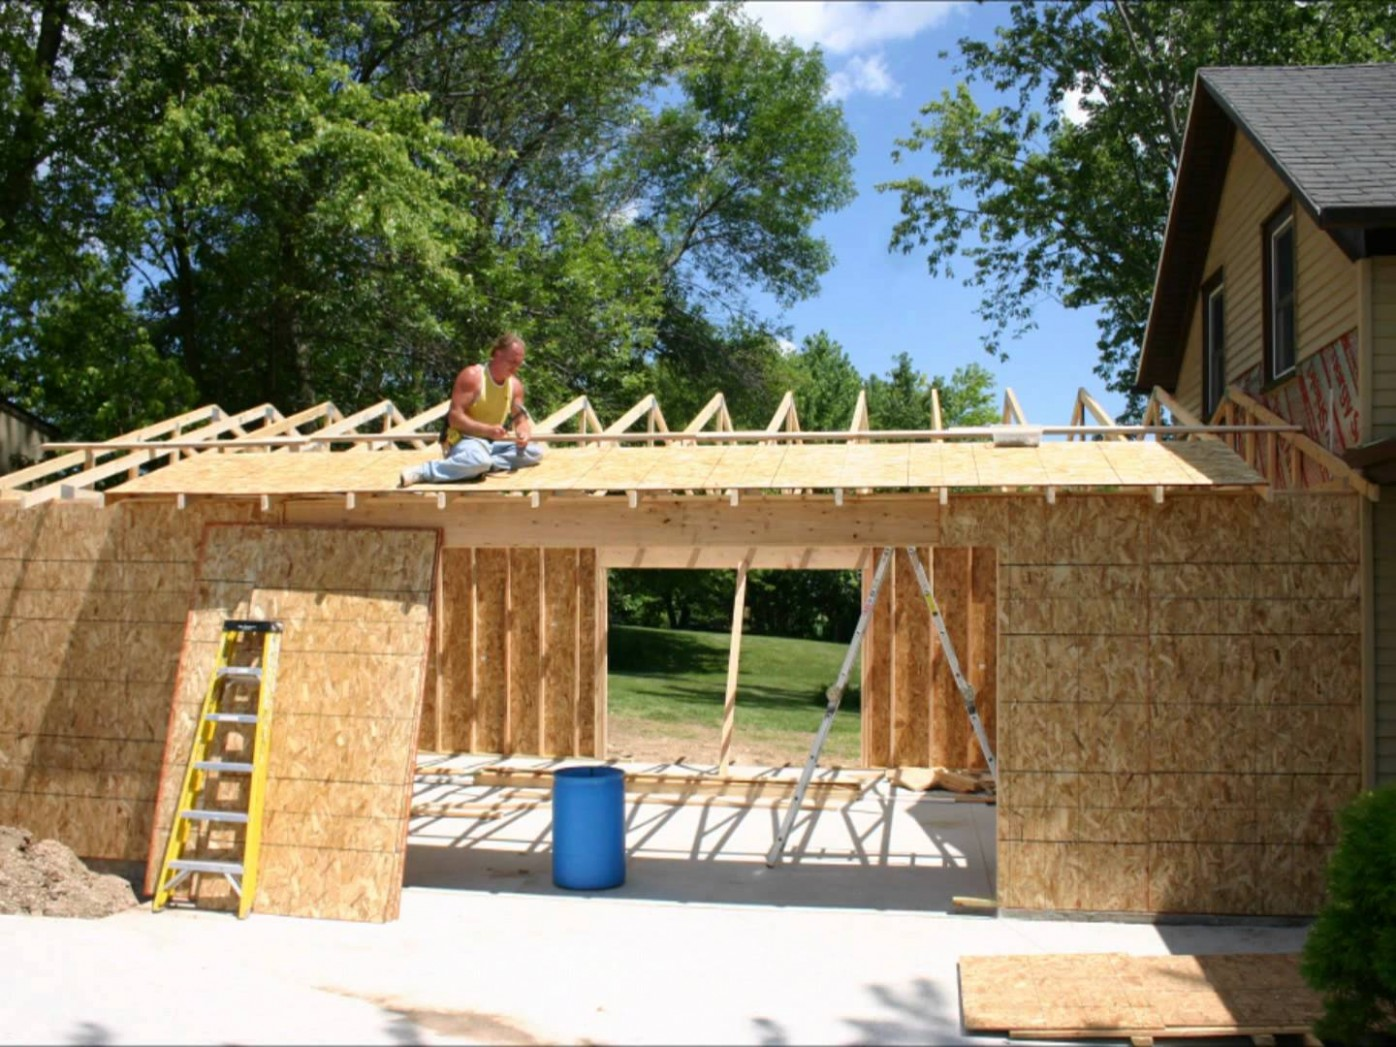 1517788201-attached-garage-build-youtube-does-a-carport-add-value-to-a-house.jpg